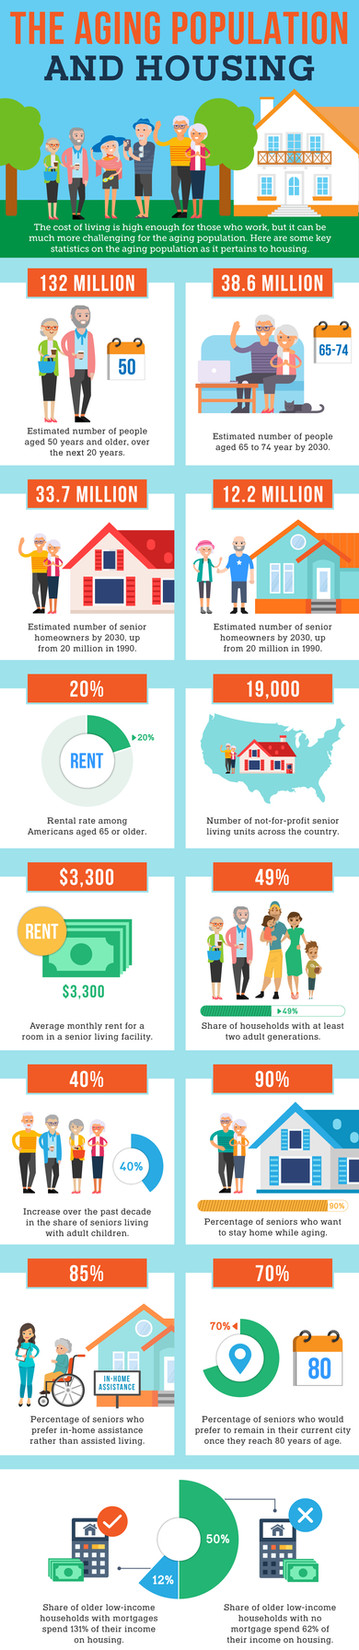 The Aging Population and Housing